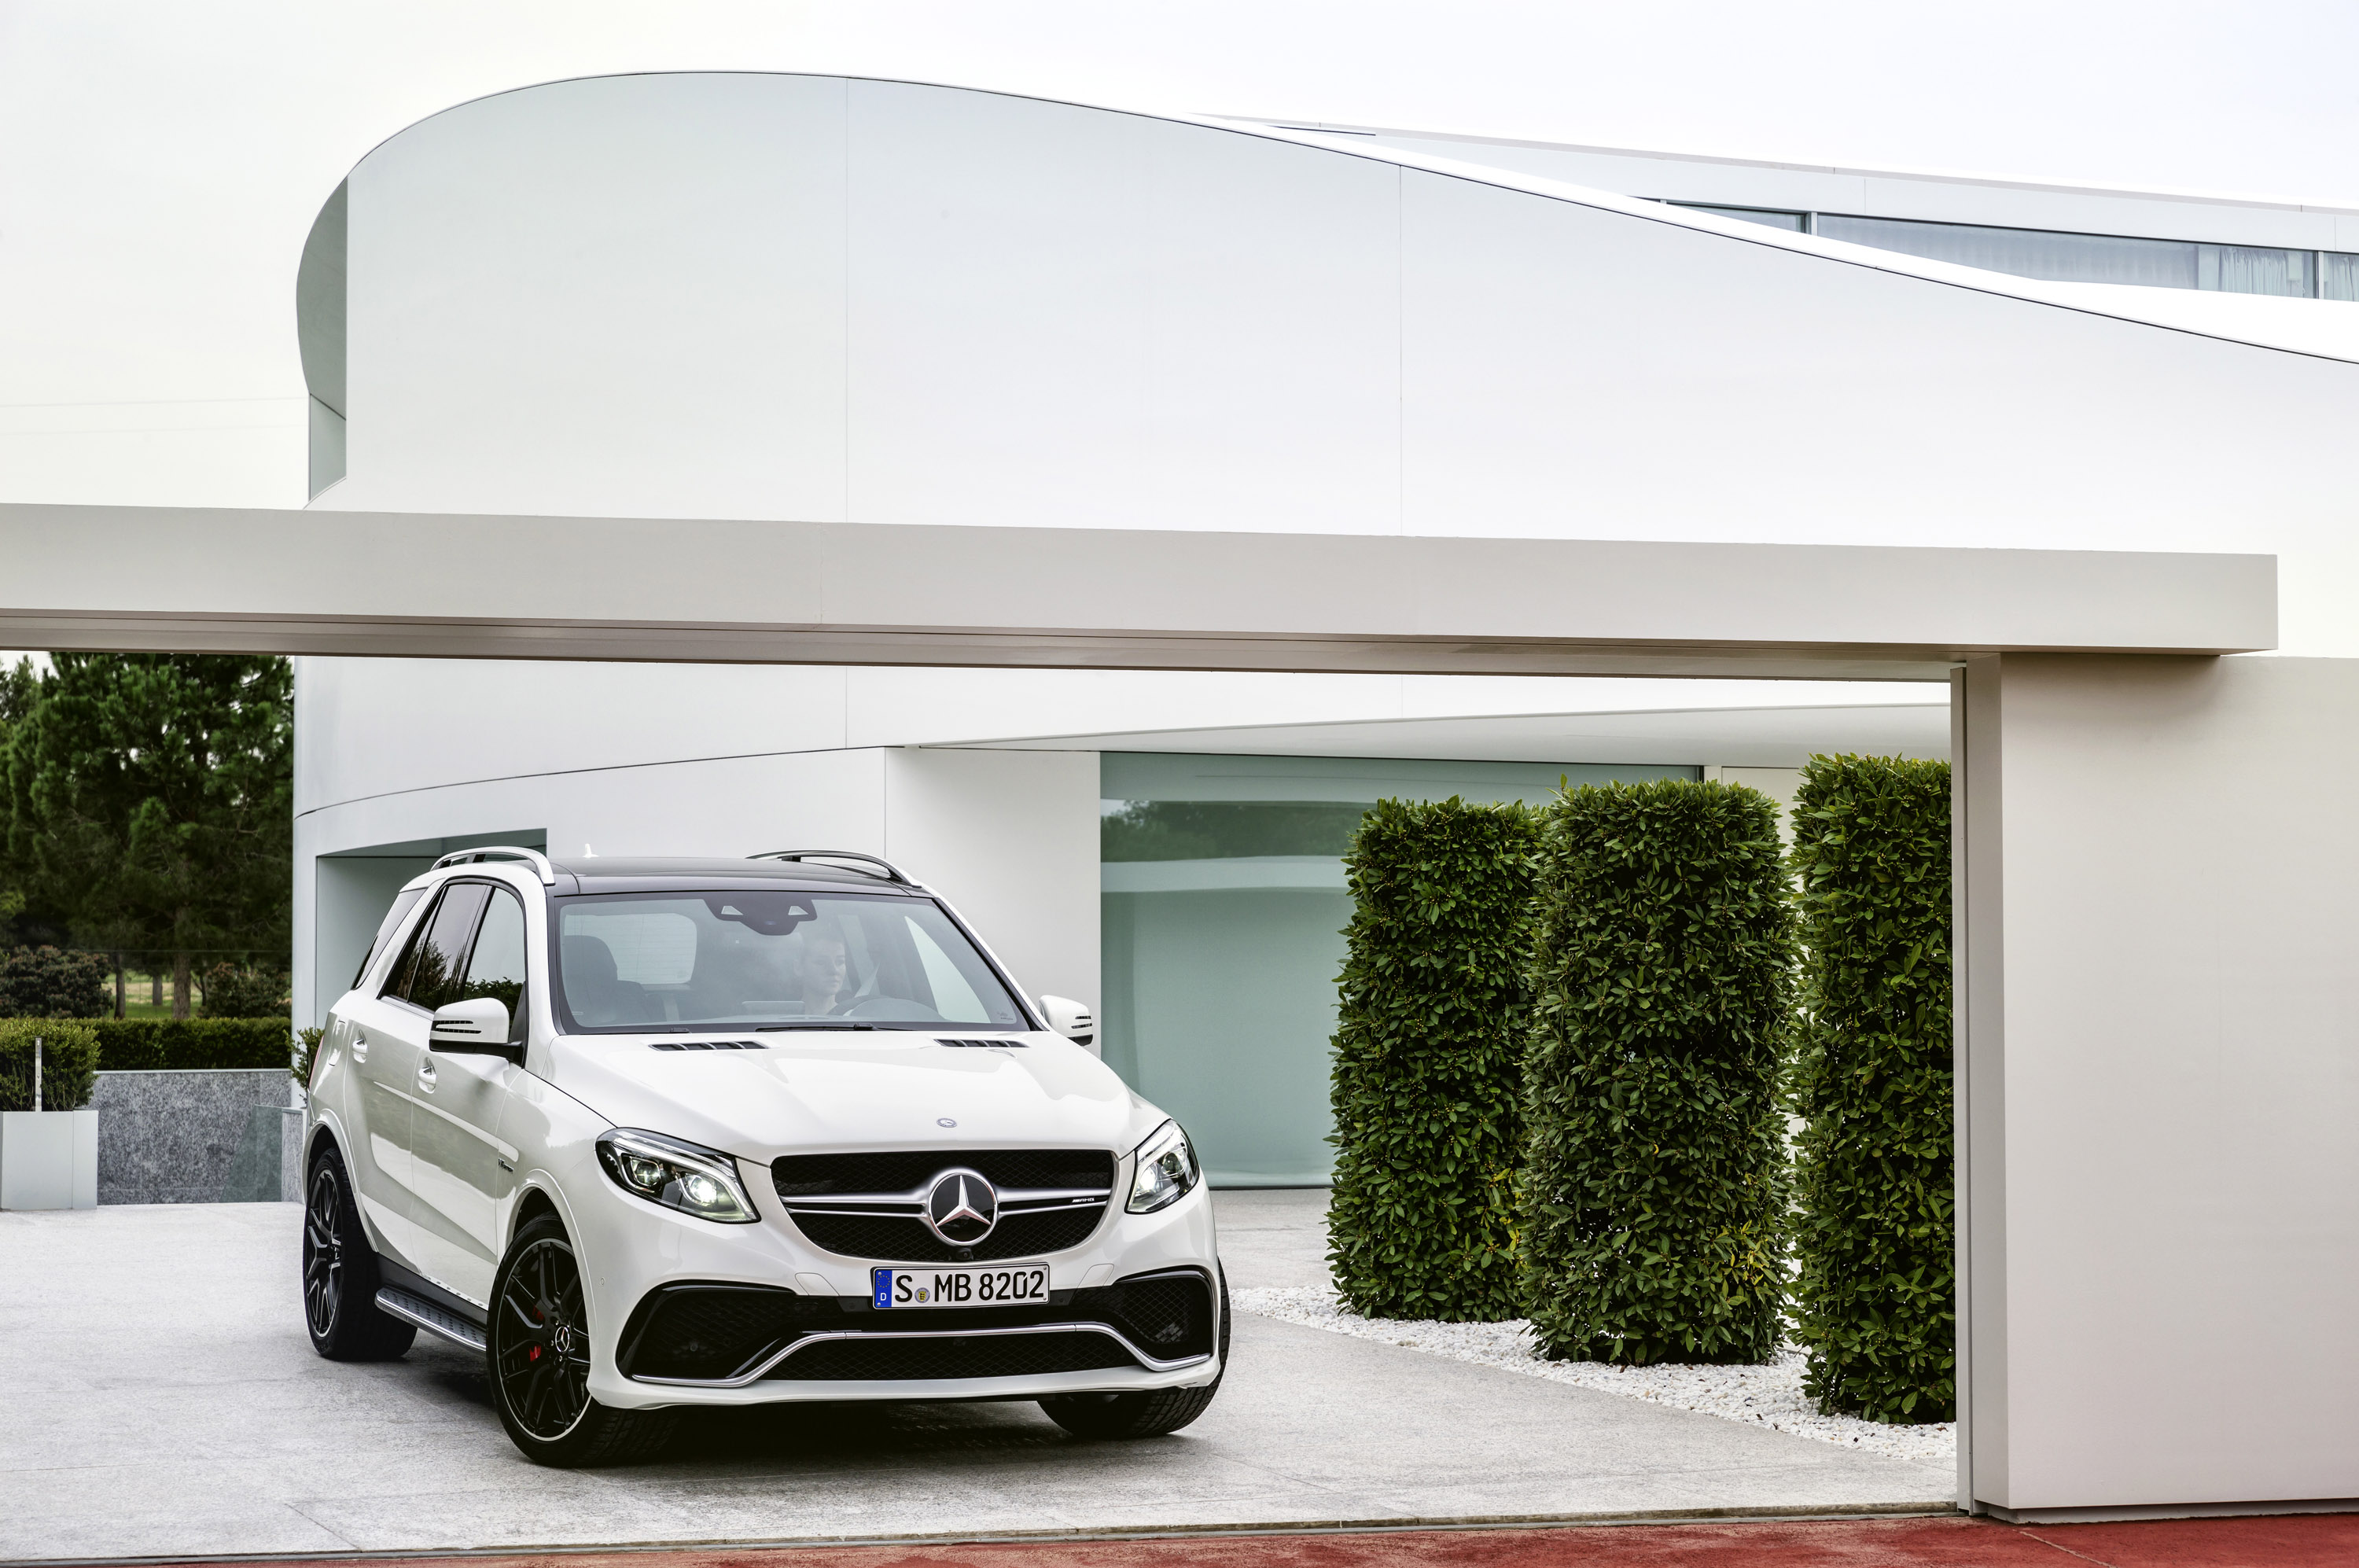 2016 mercedes benz gle 63 amg picture 118957 for Mercedes benz b1 service